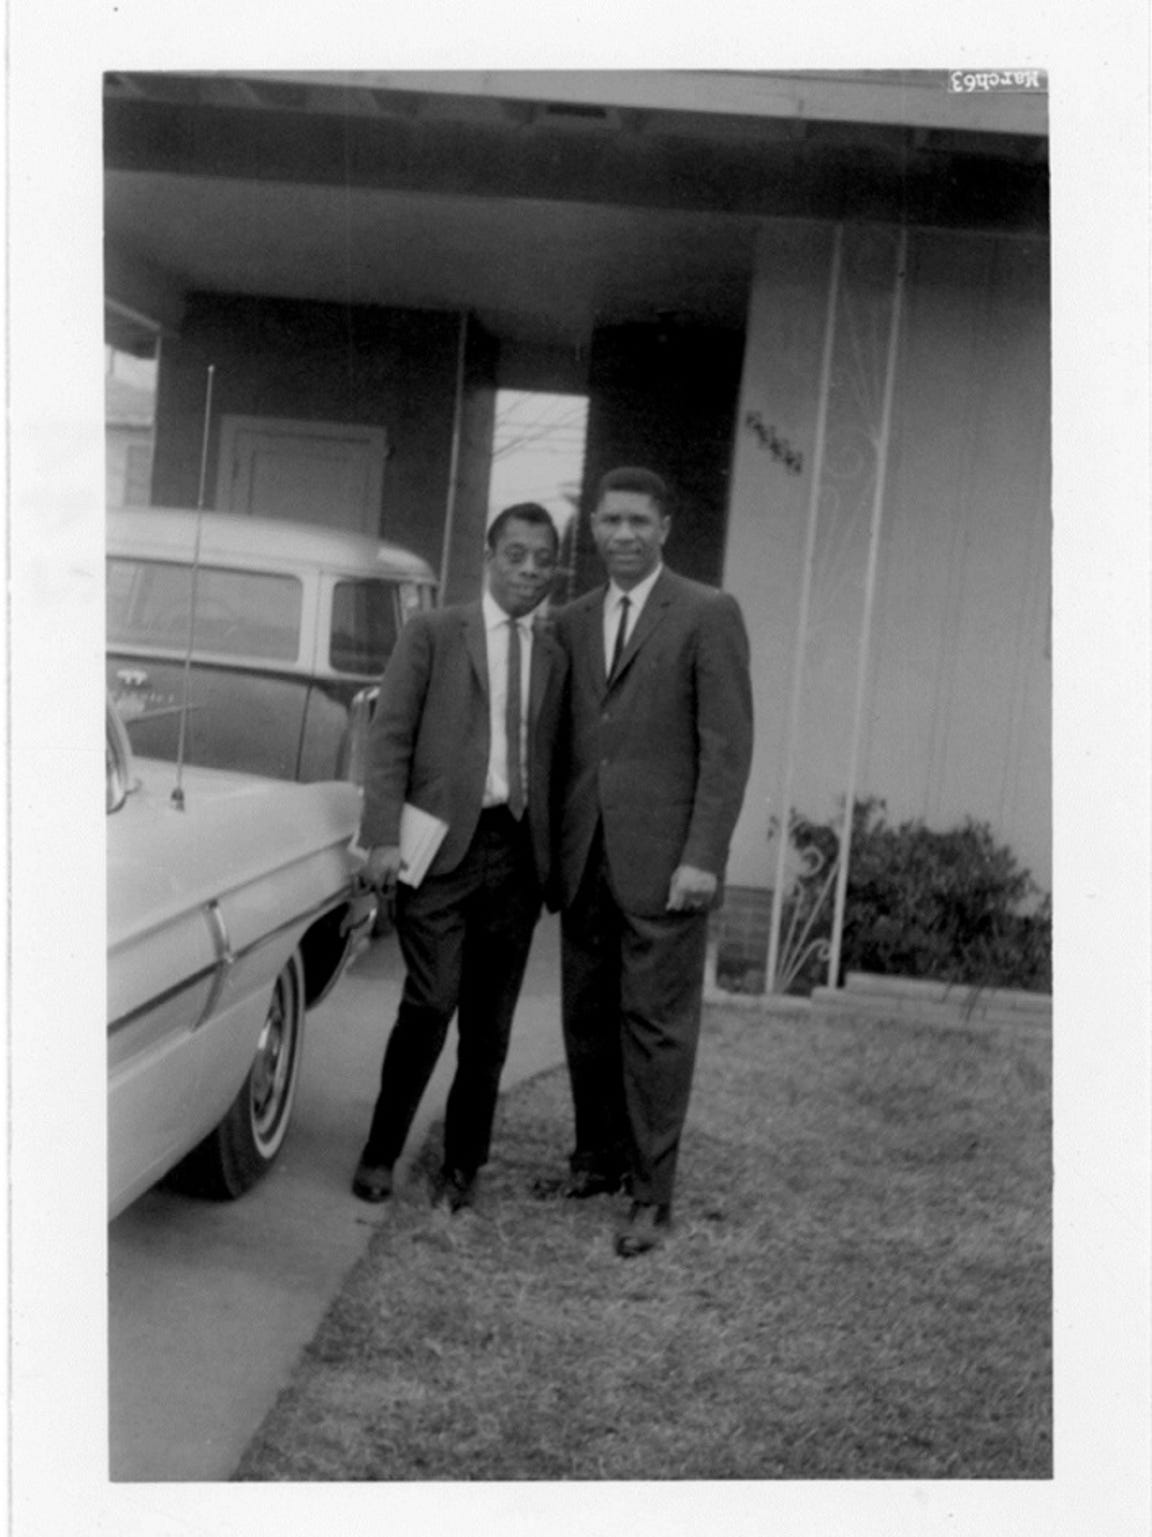 5. James Baldwin and Medgar Evers in 'I Am Not Your